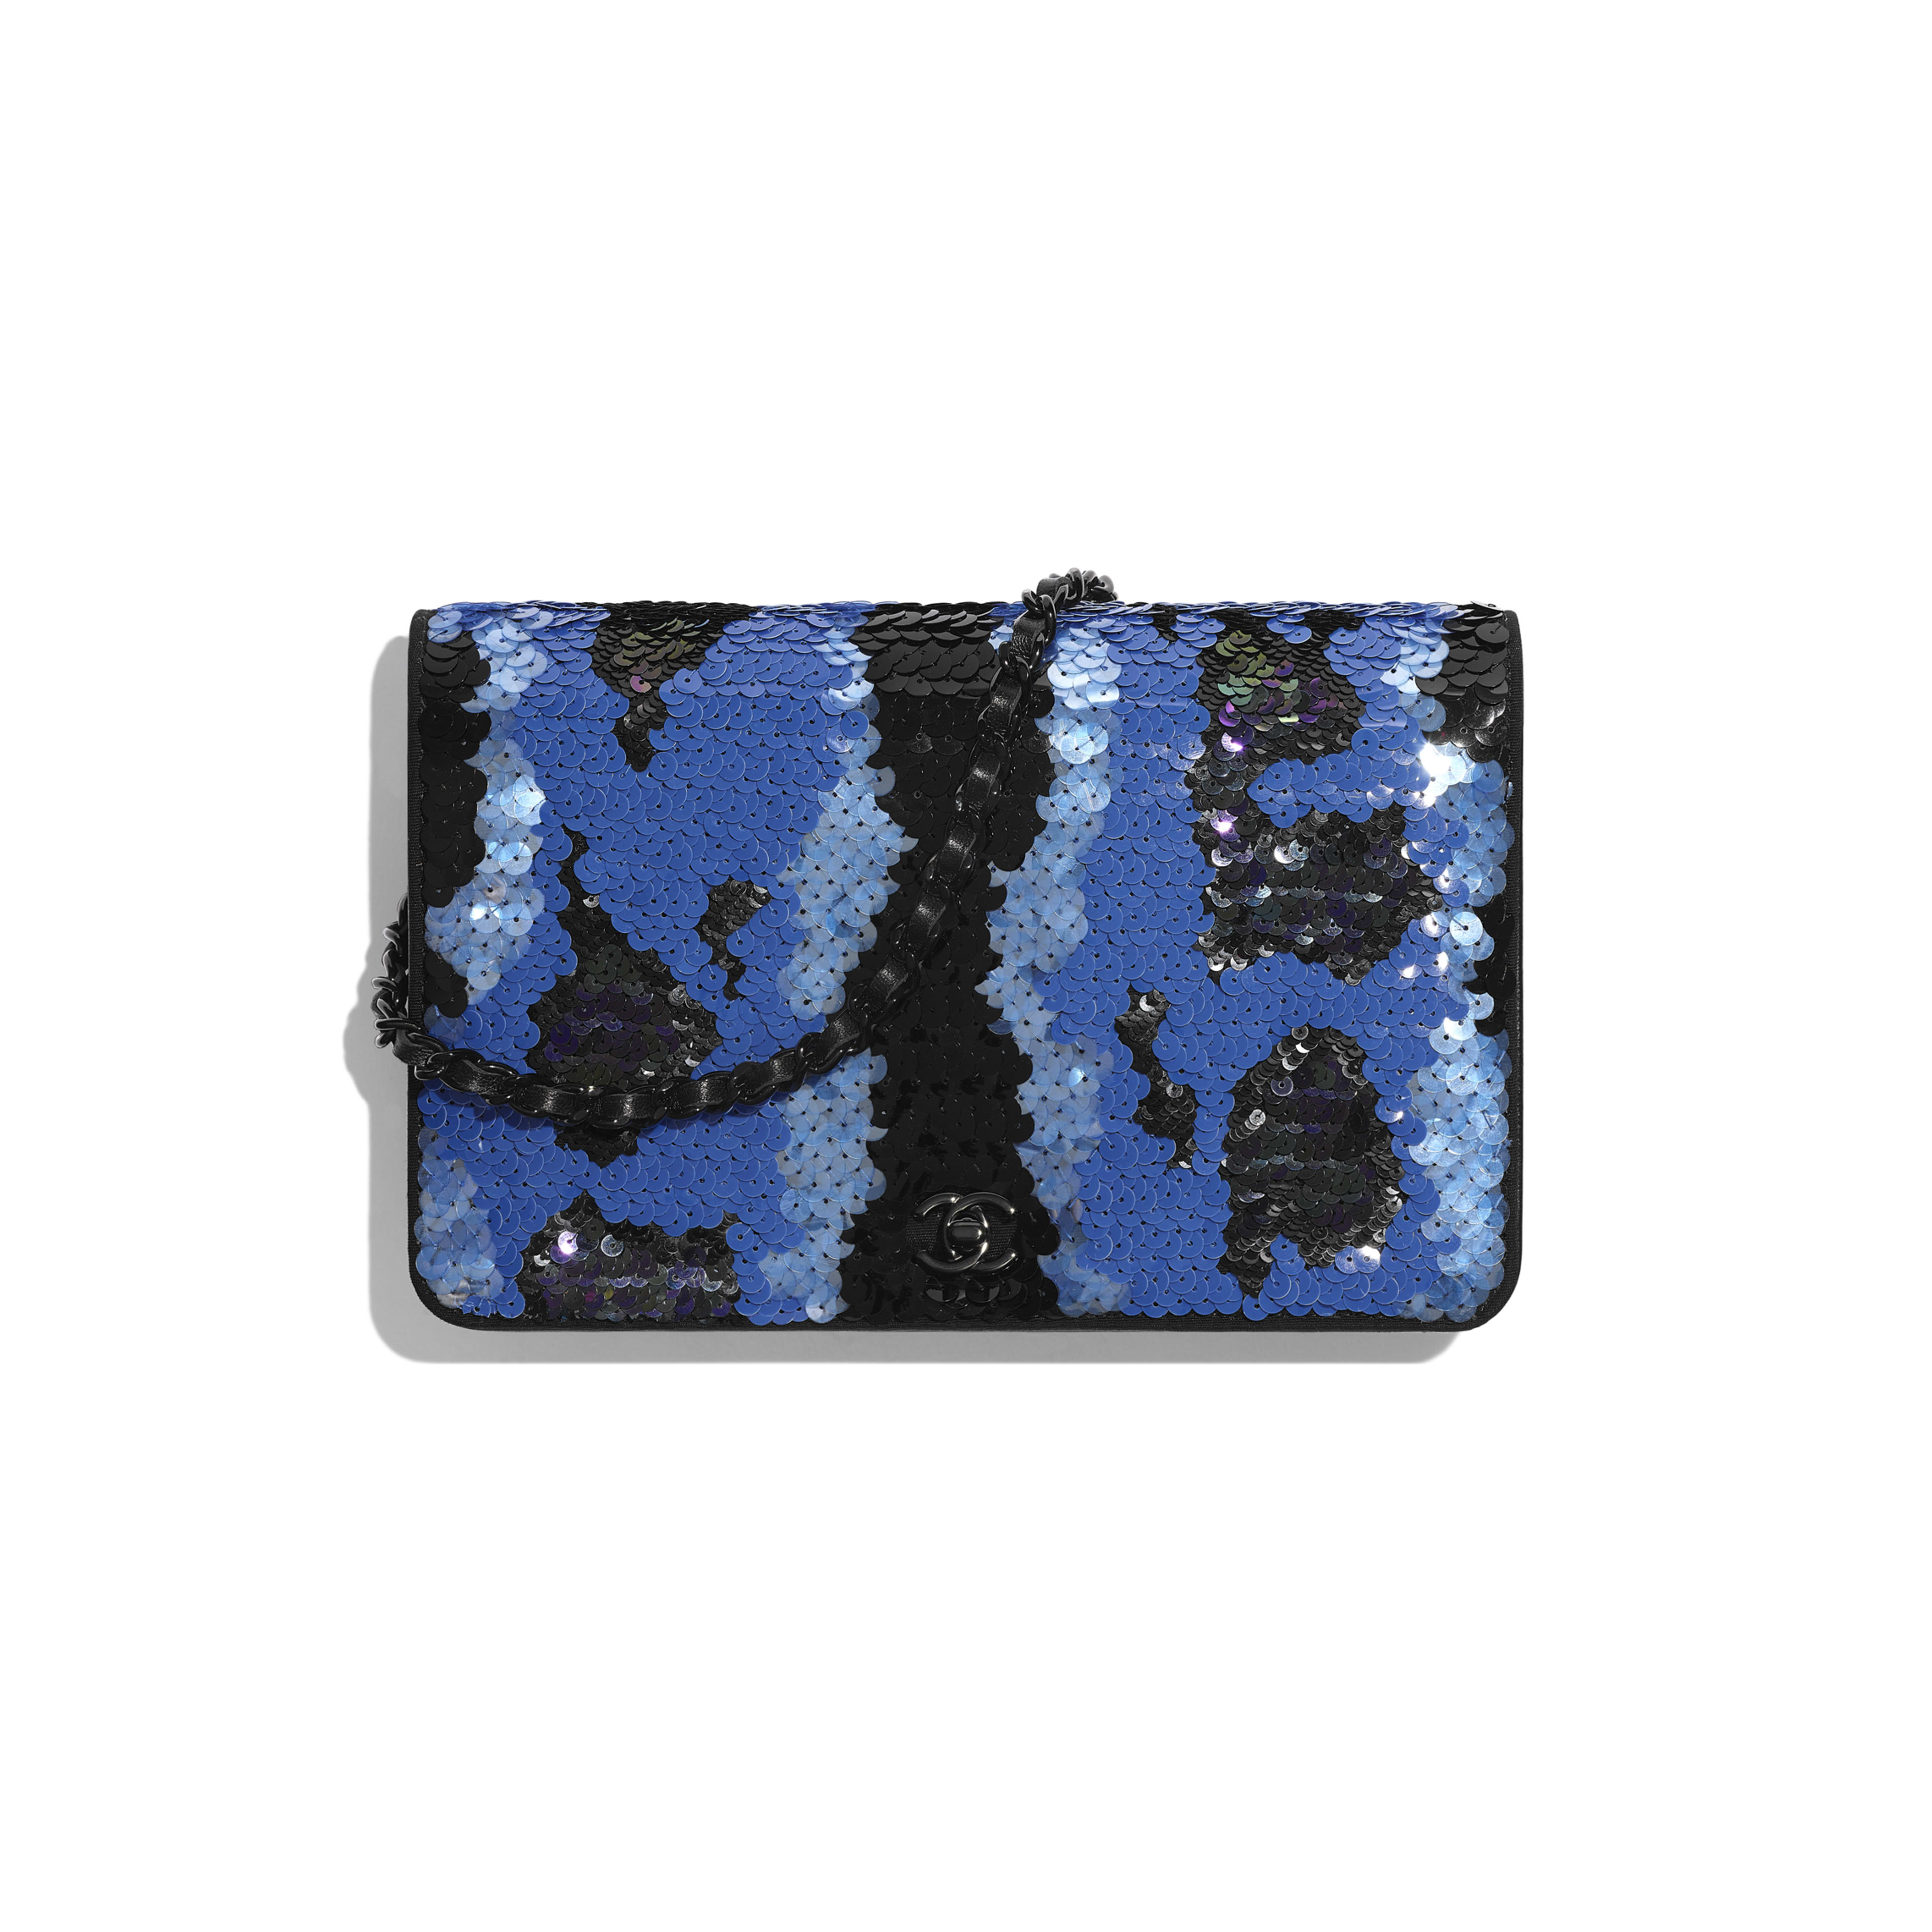 Wallet on Chain - Blue & Black - Sequins & Black Metal - Default view - see full sized version